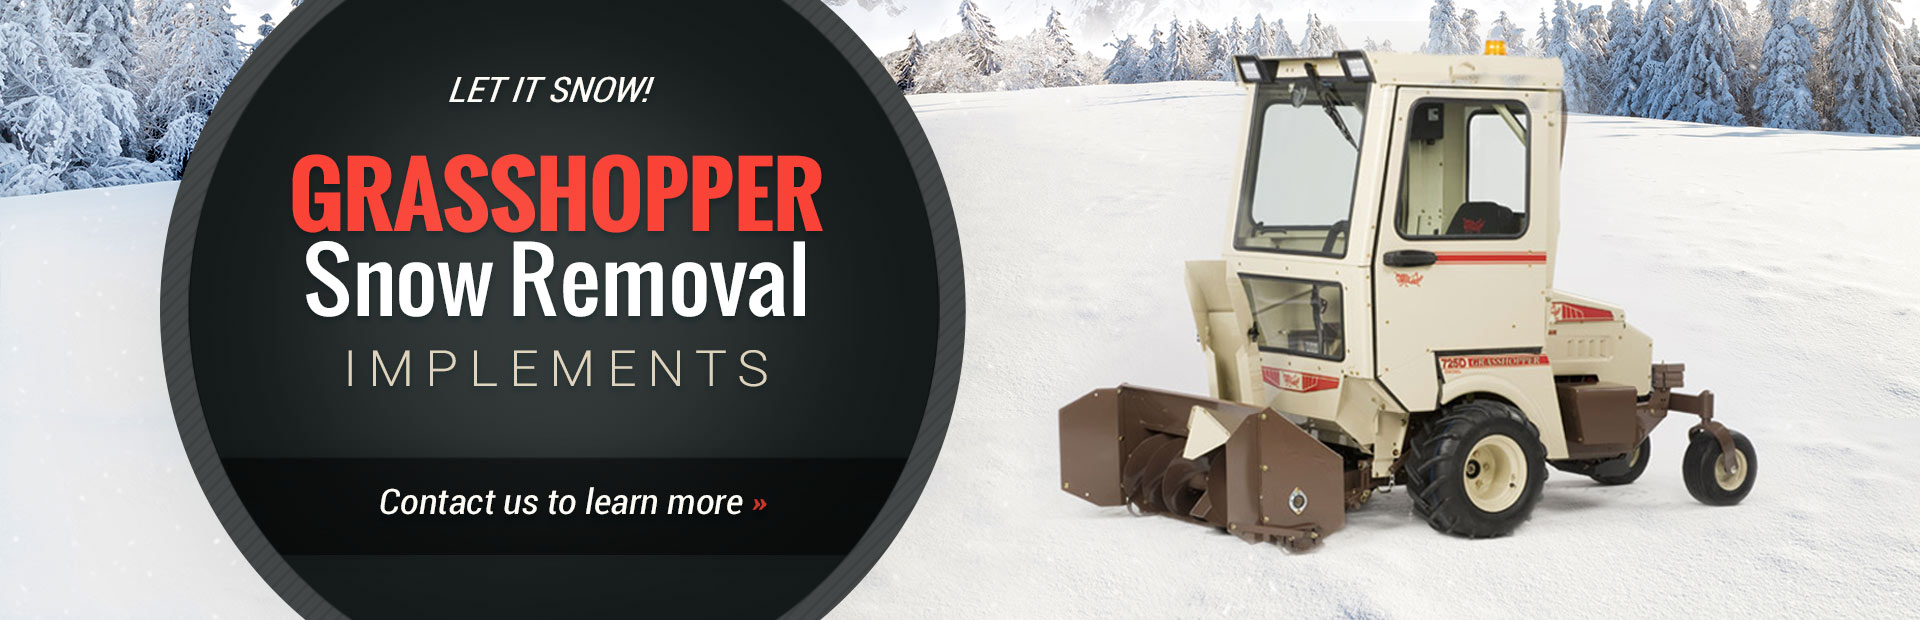 Grasshopper Snow Removal Implements: Contact us to learn more.